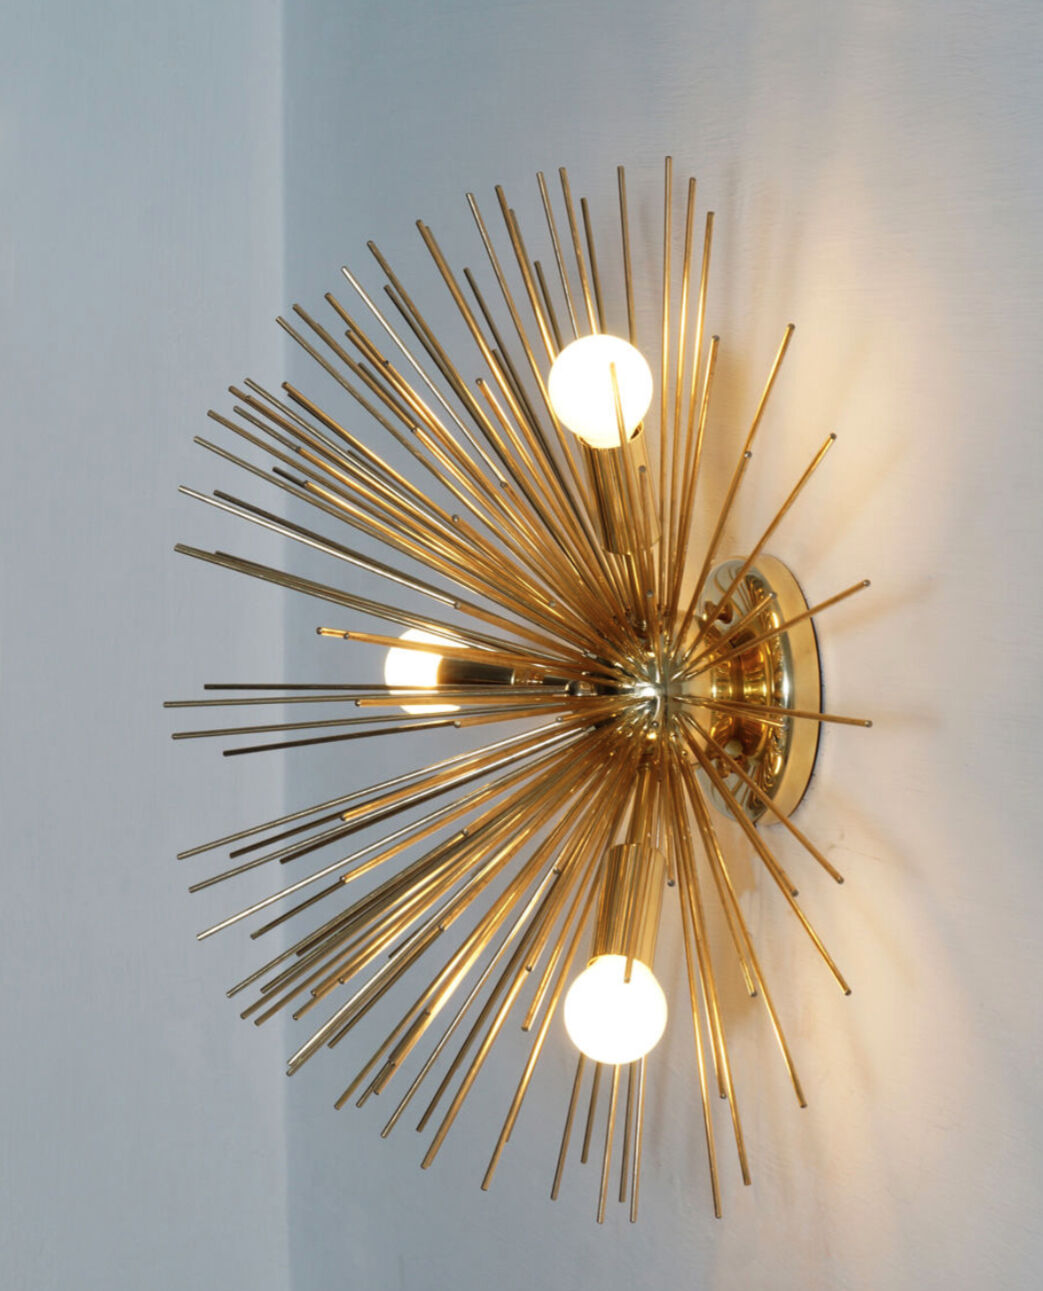 Mid Century Modern Urchin Brass Wall Sconce Sputnik Light - 3 Bulb Wall Lamp 18